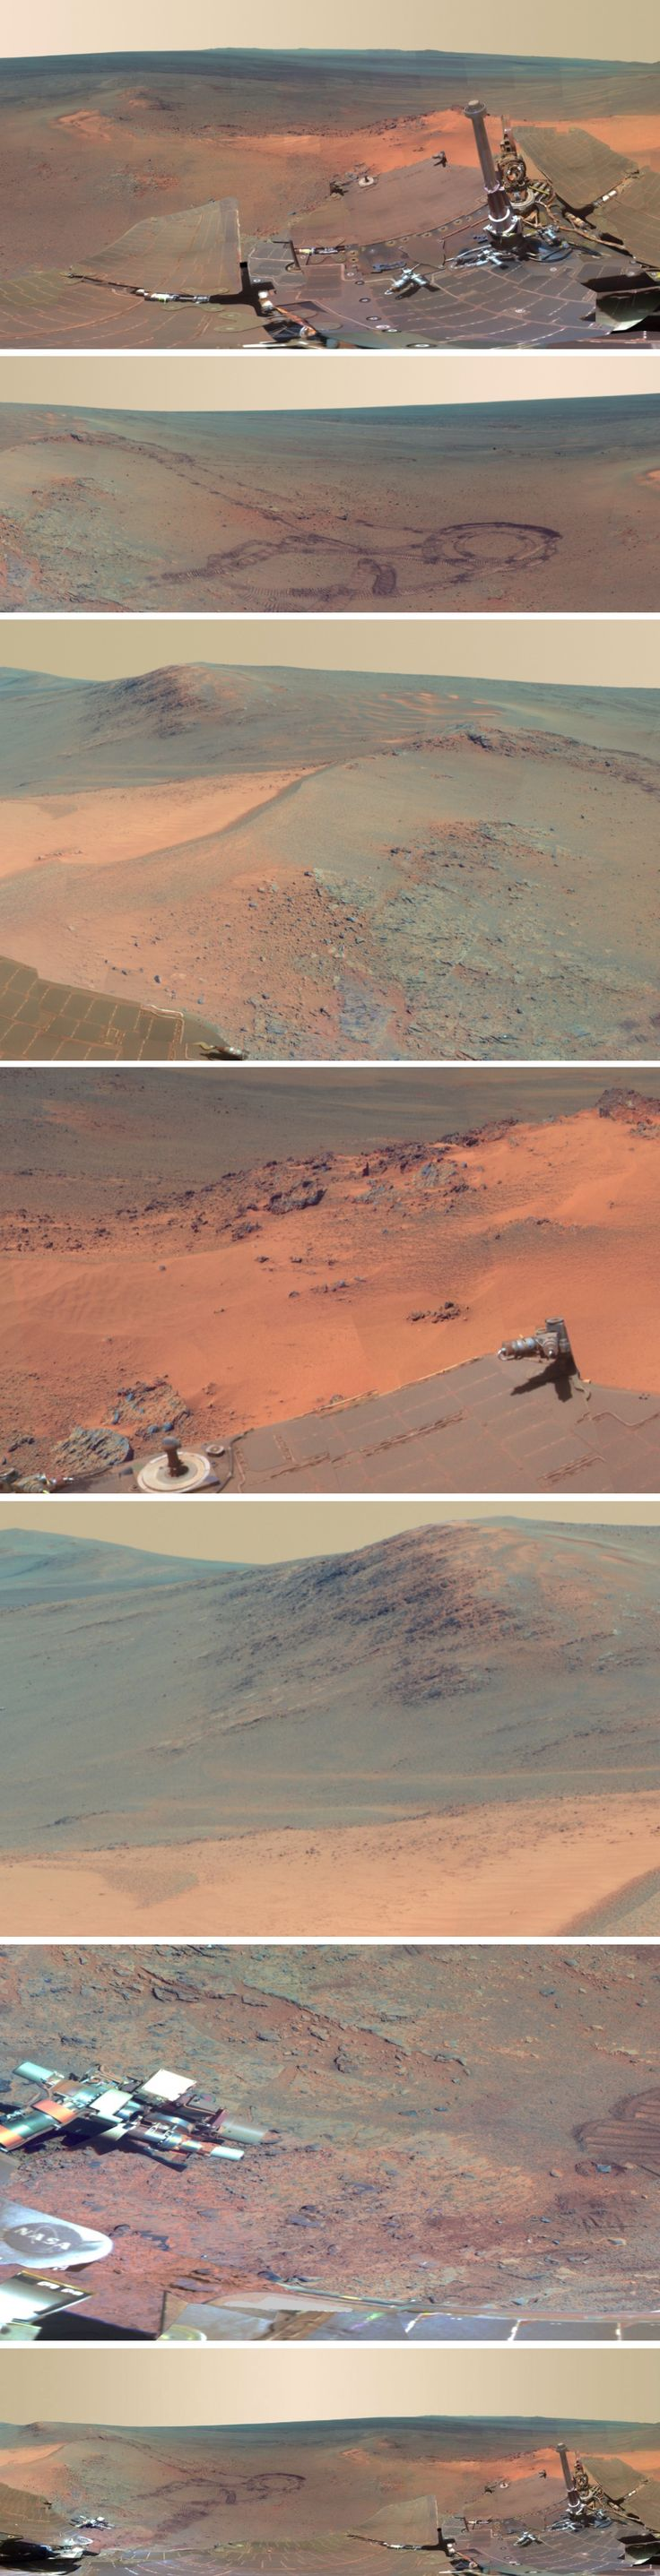 NASA has released a new panorama from its Mars Exploration Rover 2012 Opportunity, showing the terrain where the robot spent the four-month Martian winter.